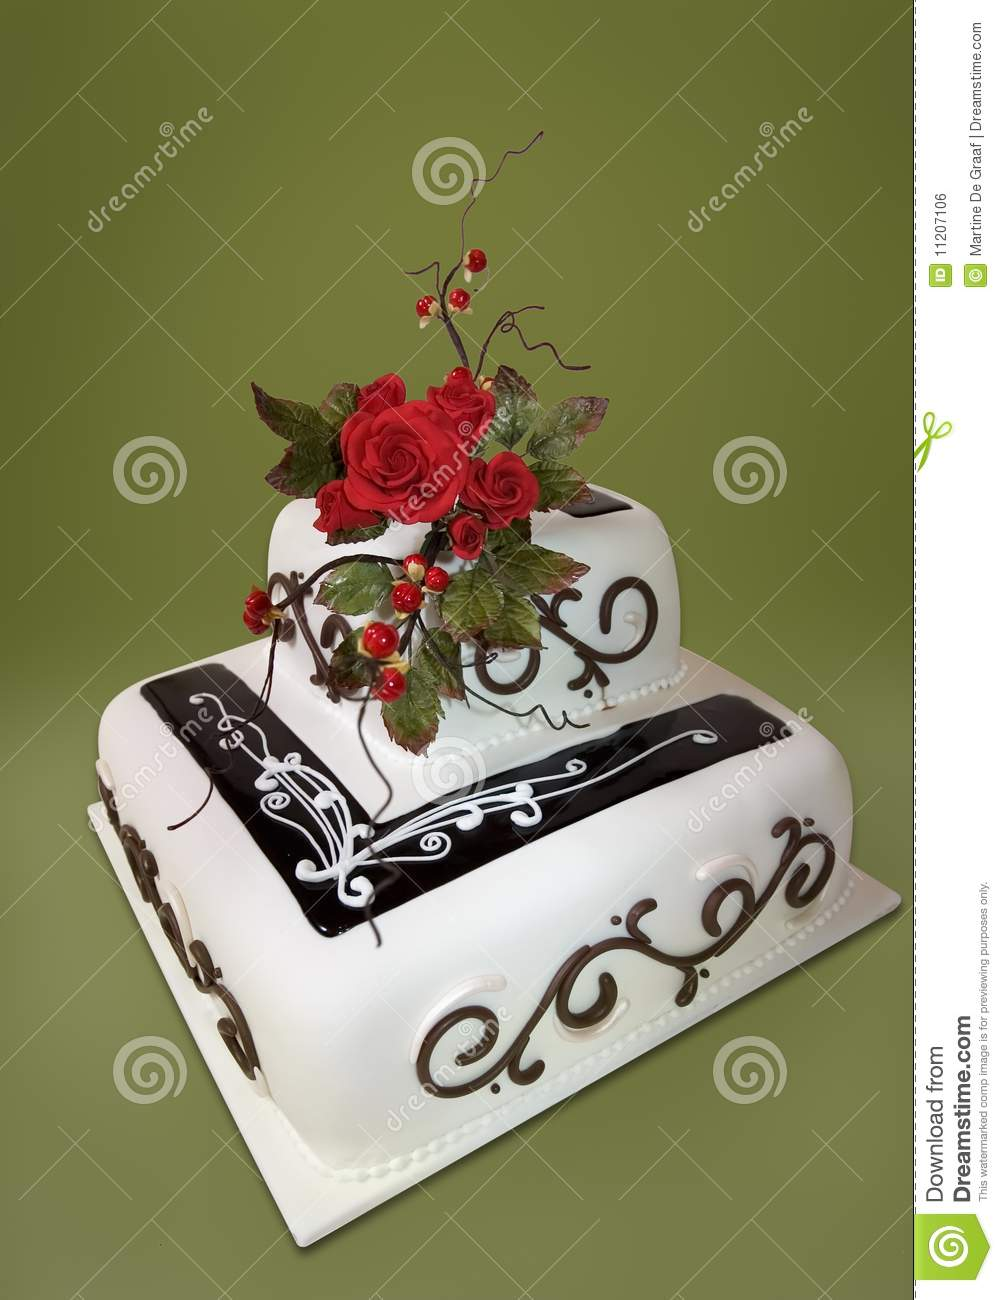 Roses Wedding Cake Stock Photo Image Of Tiered Bitter 11207106